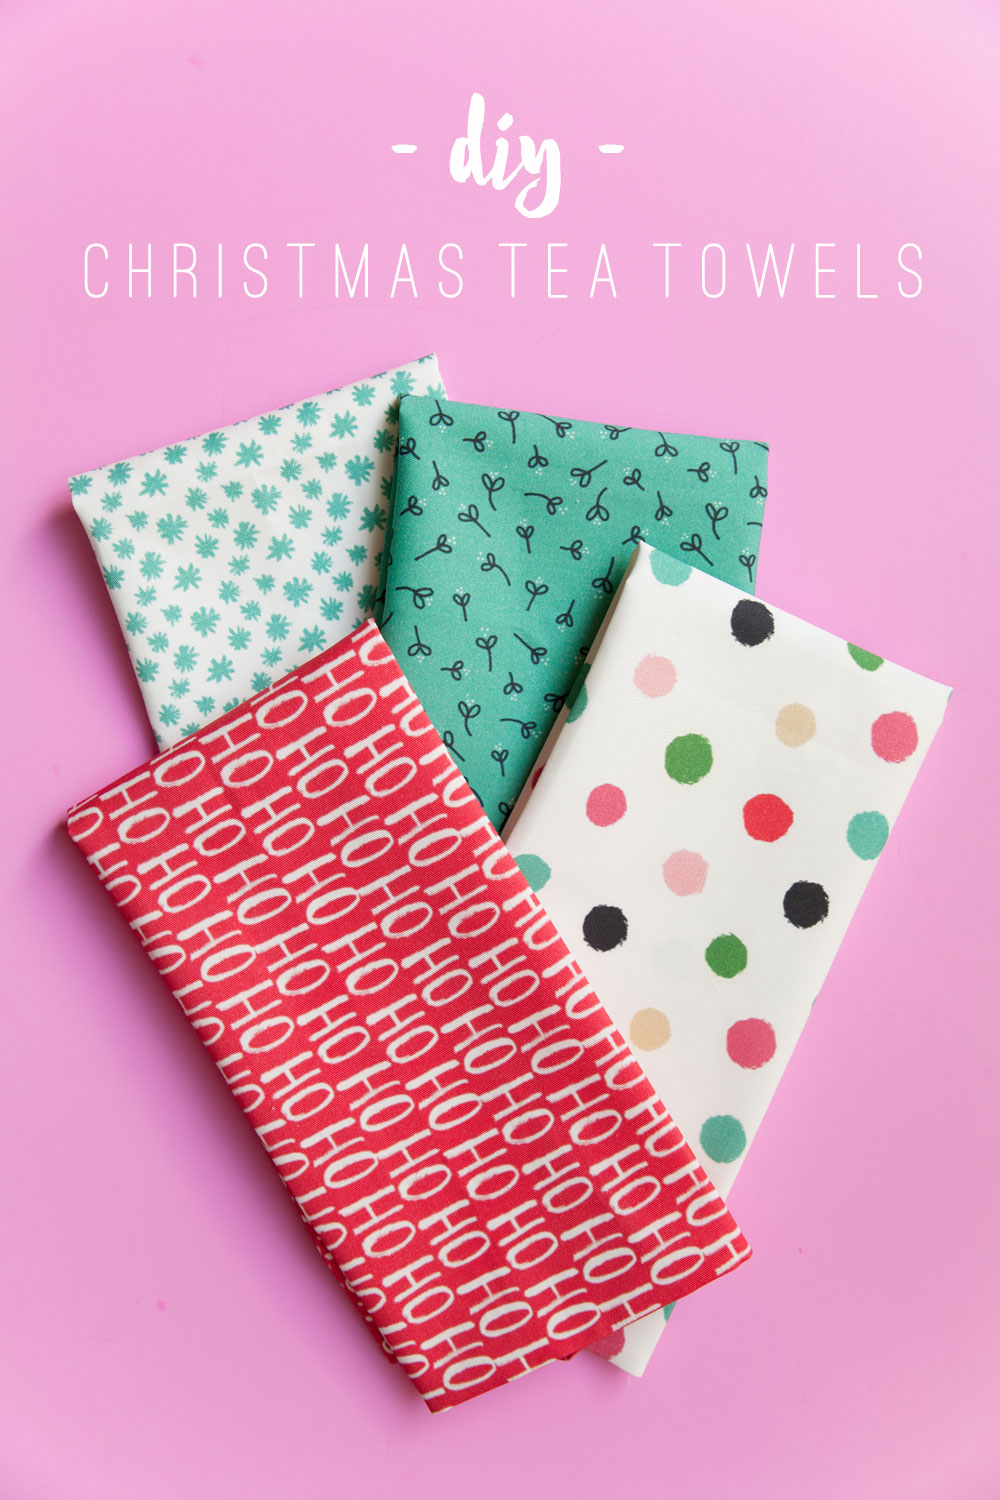 diy-christmas-tea-towels--2-